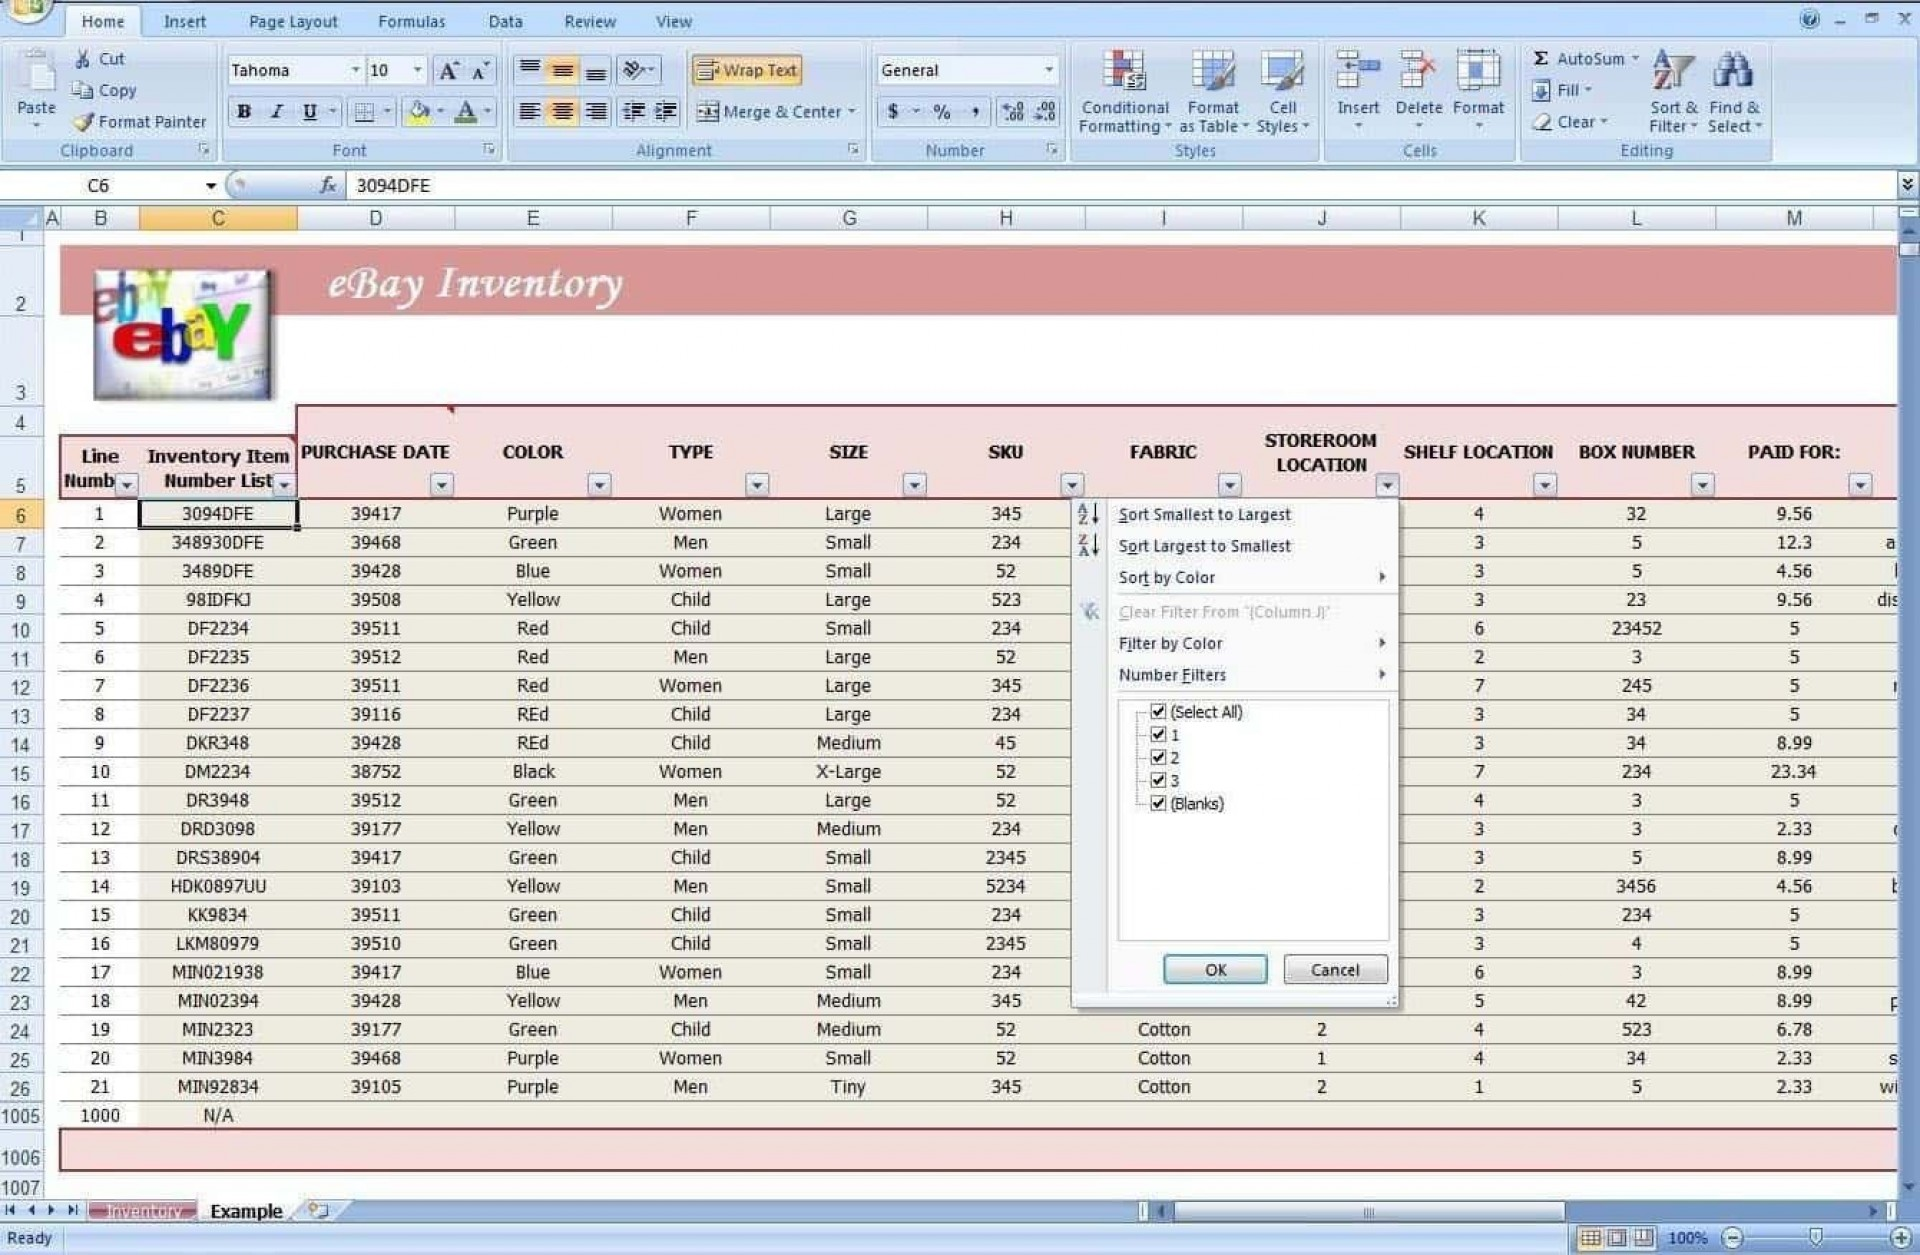 003 Simple Free Stock Inventory Spreadsheet Template Photo 1920